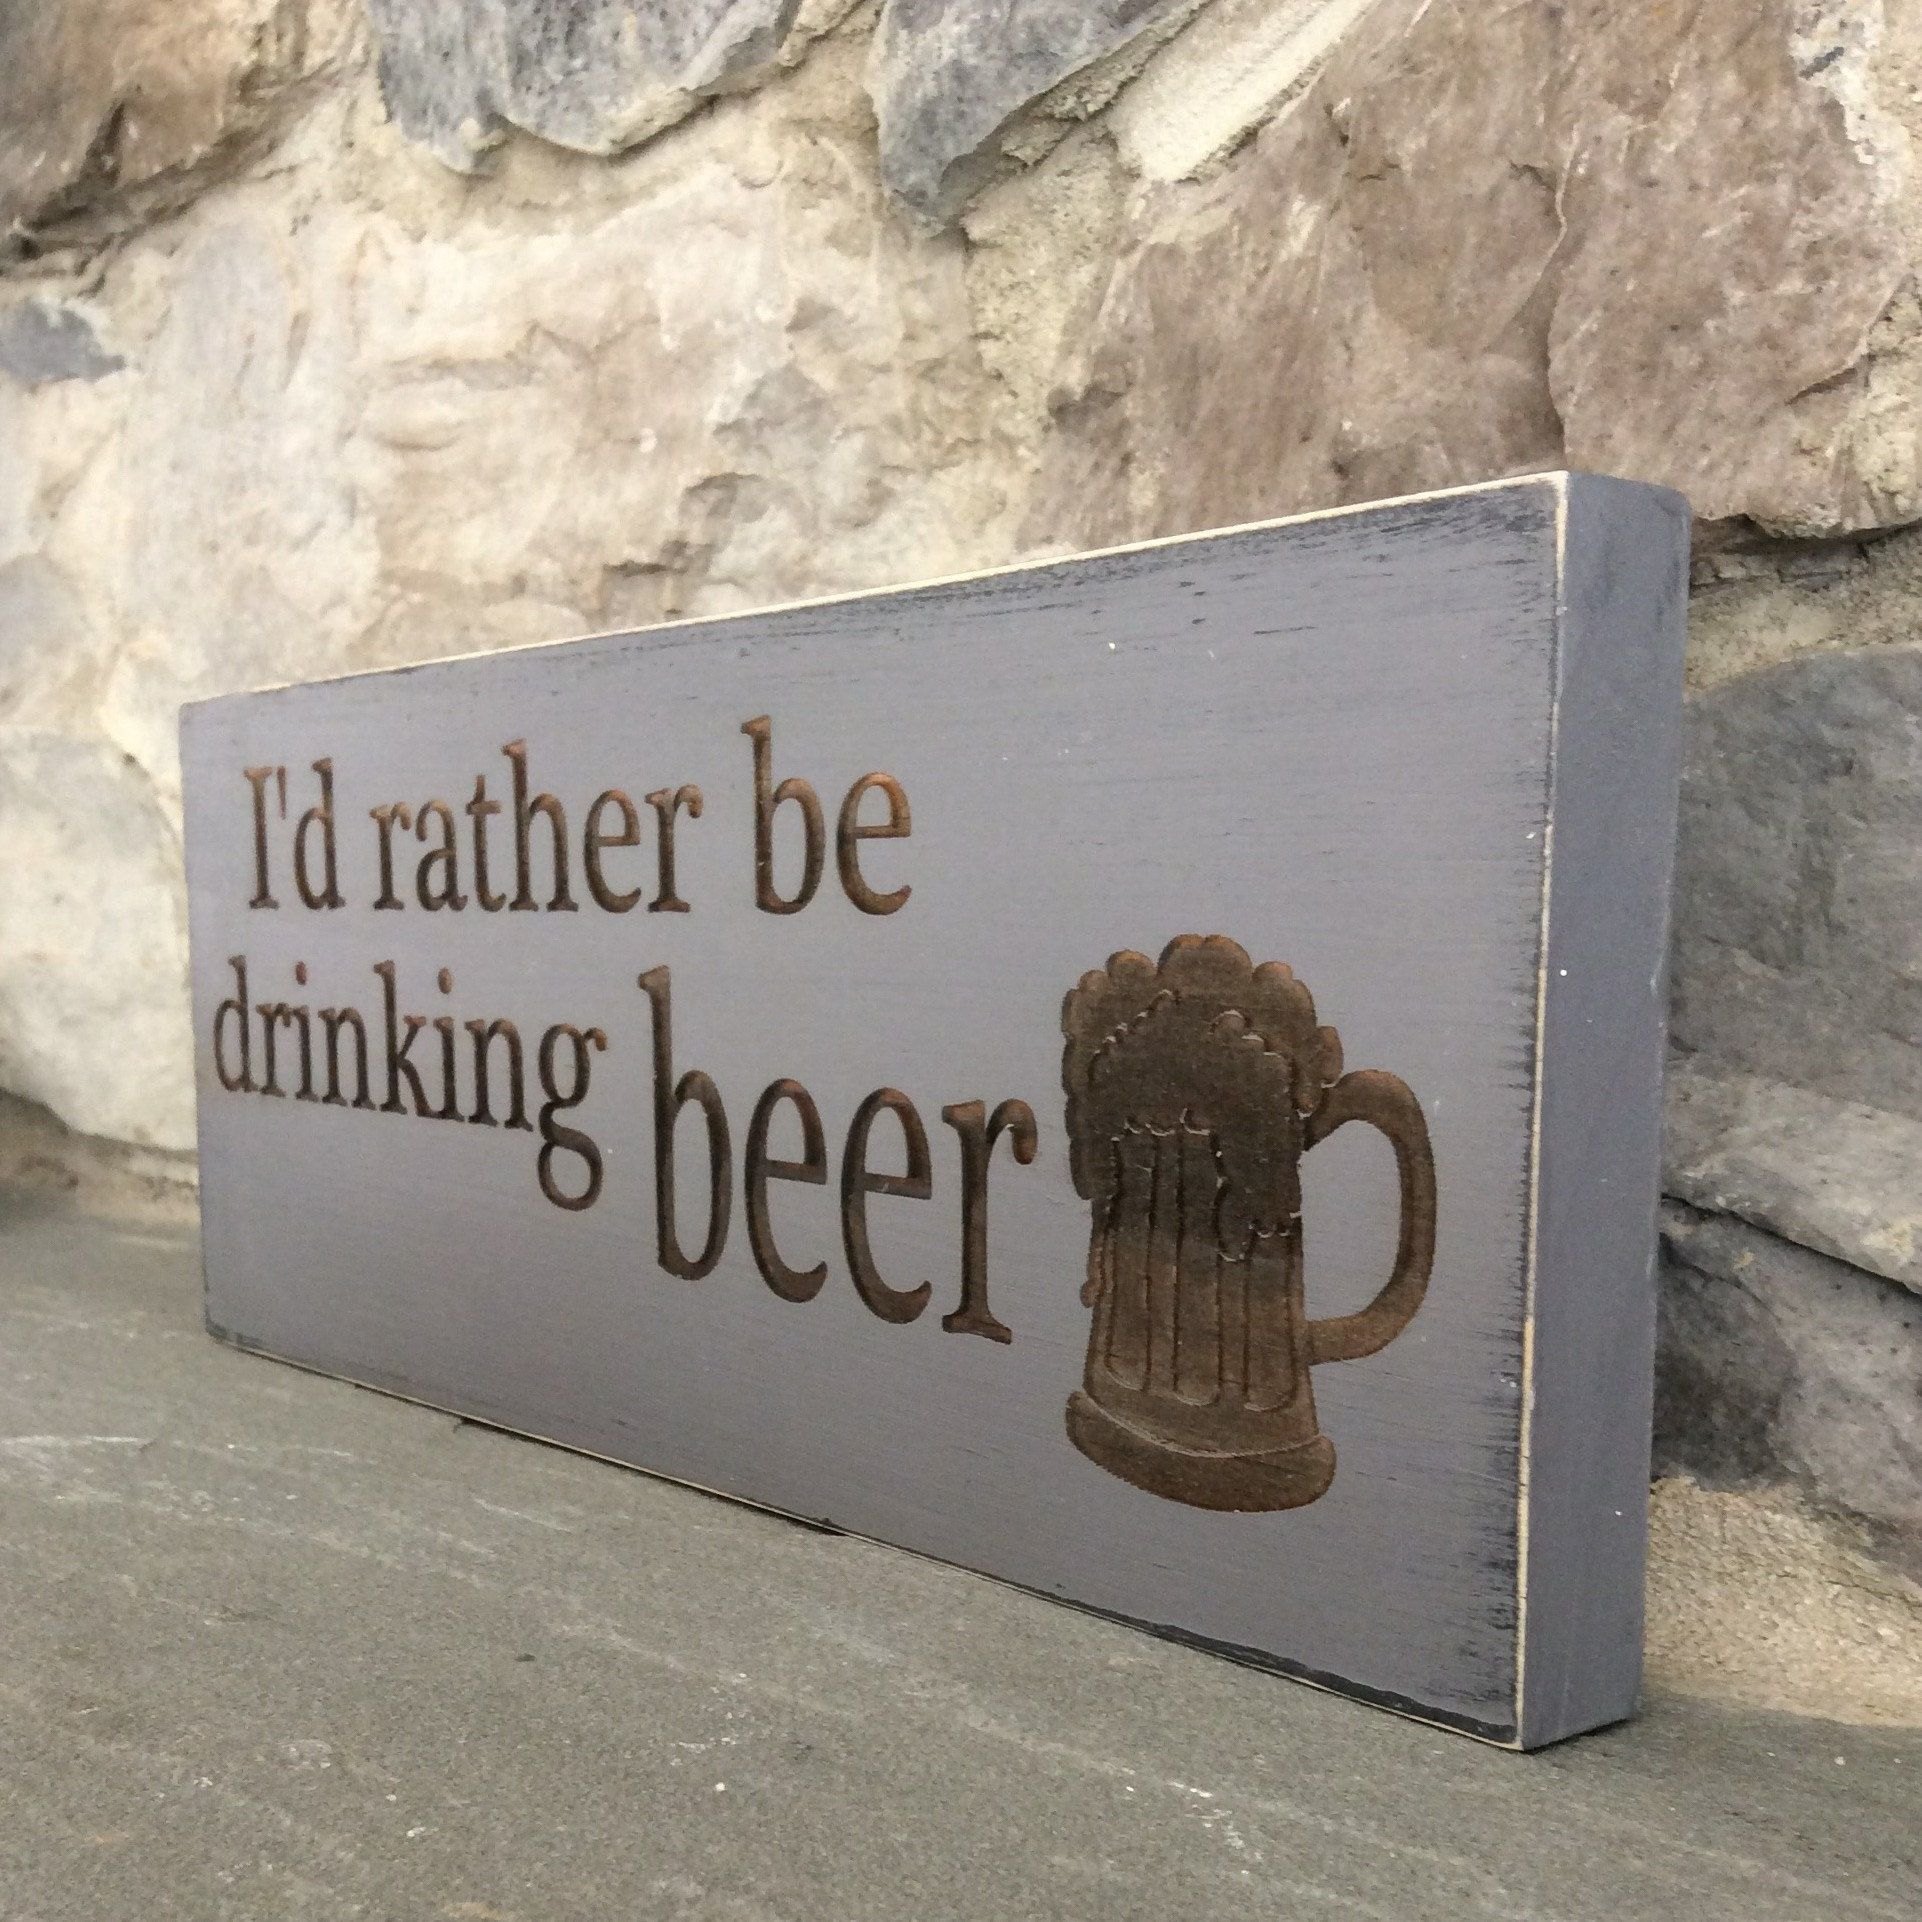 Iud rather be drinking beer wood sign beer lover gift beer sayings